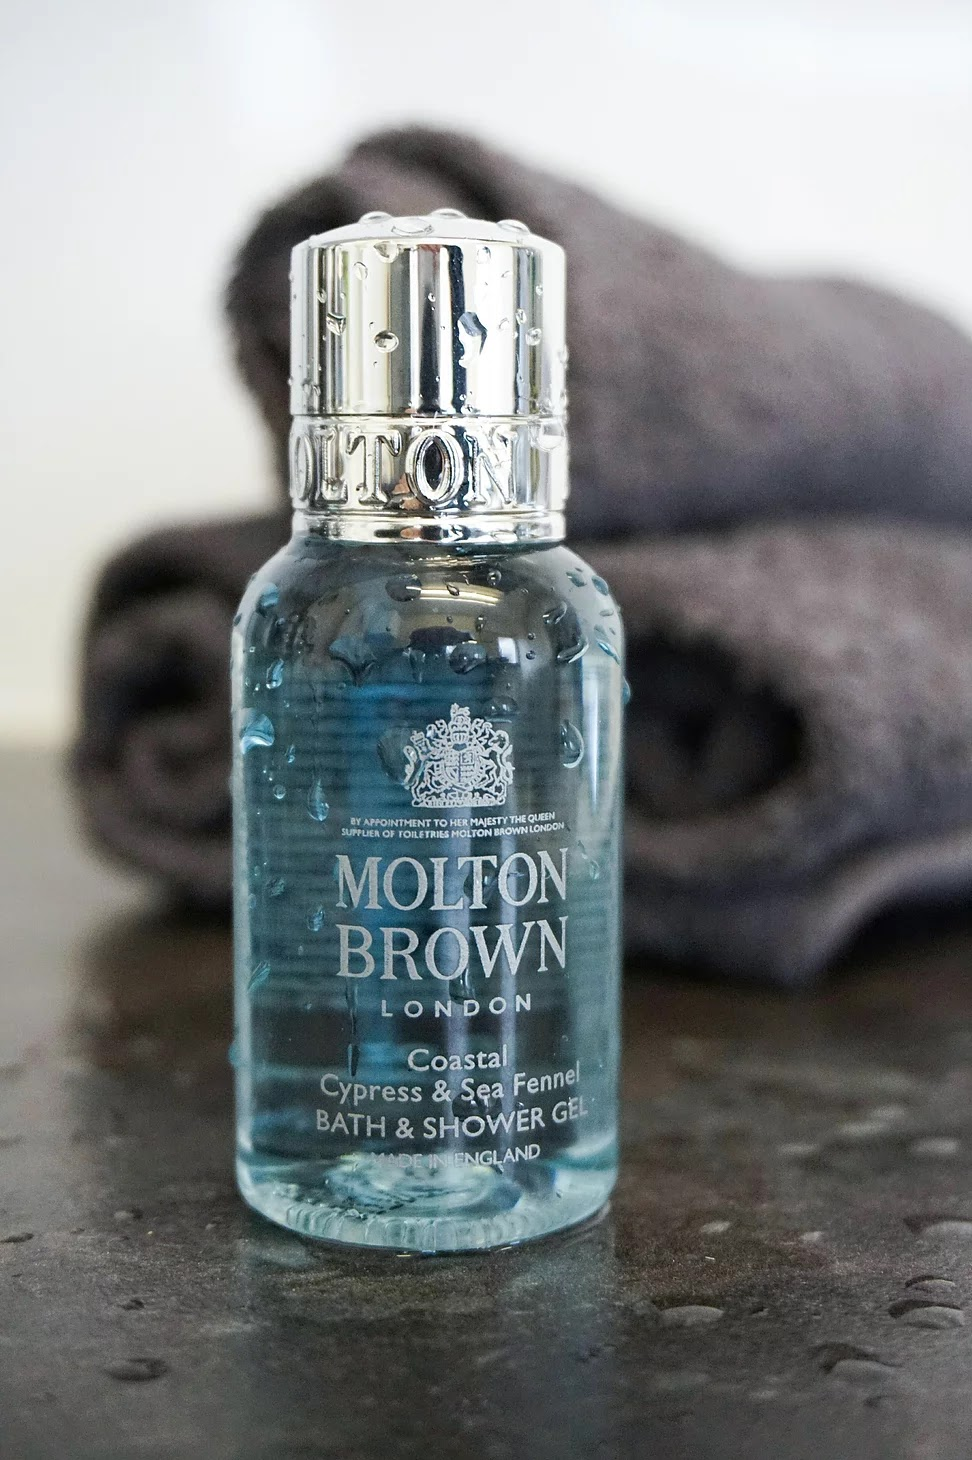 Molton Brown new collection bath and shower gel coastal cypress sea fennel